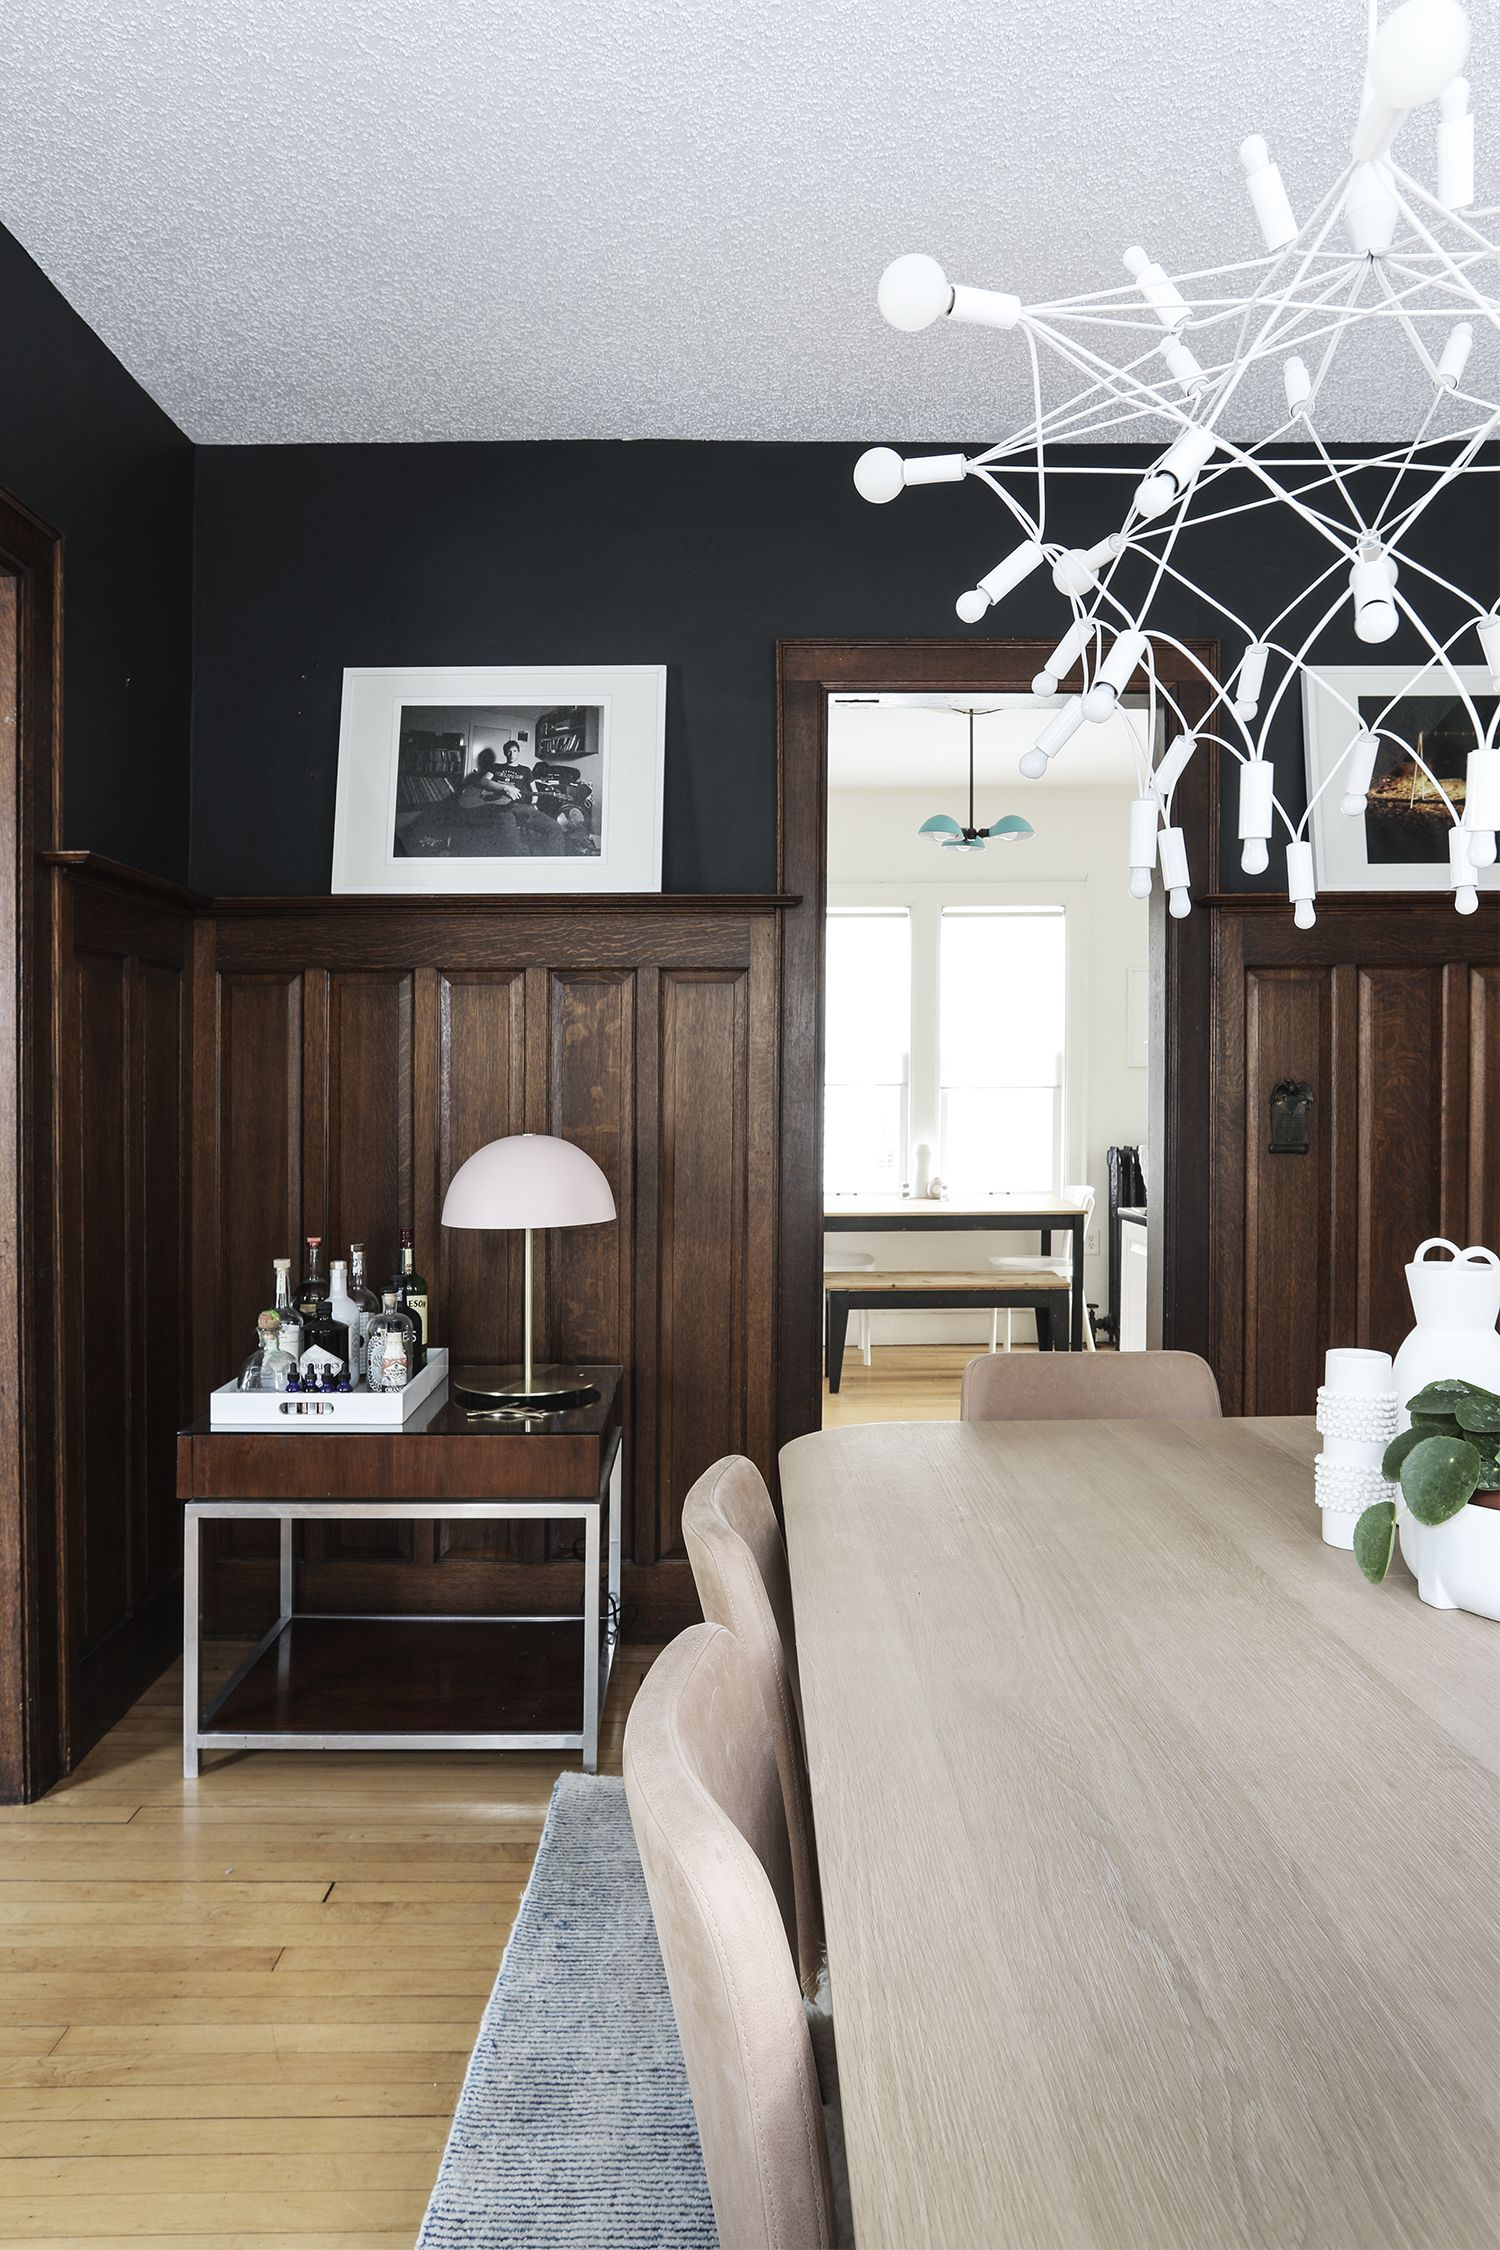 A Dining Room Refresh With Article 1920s Home Decor Interior